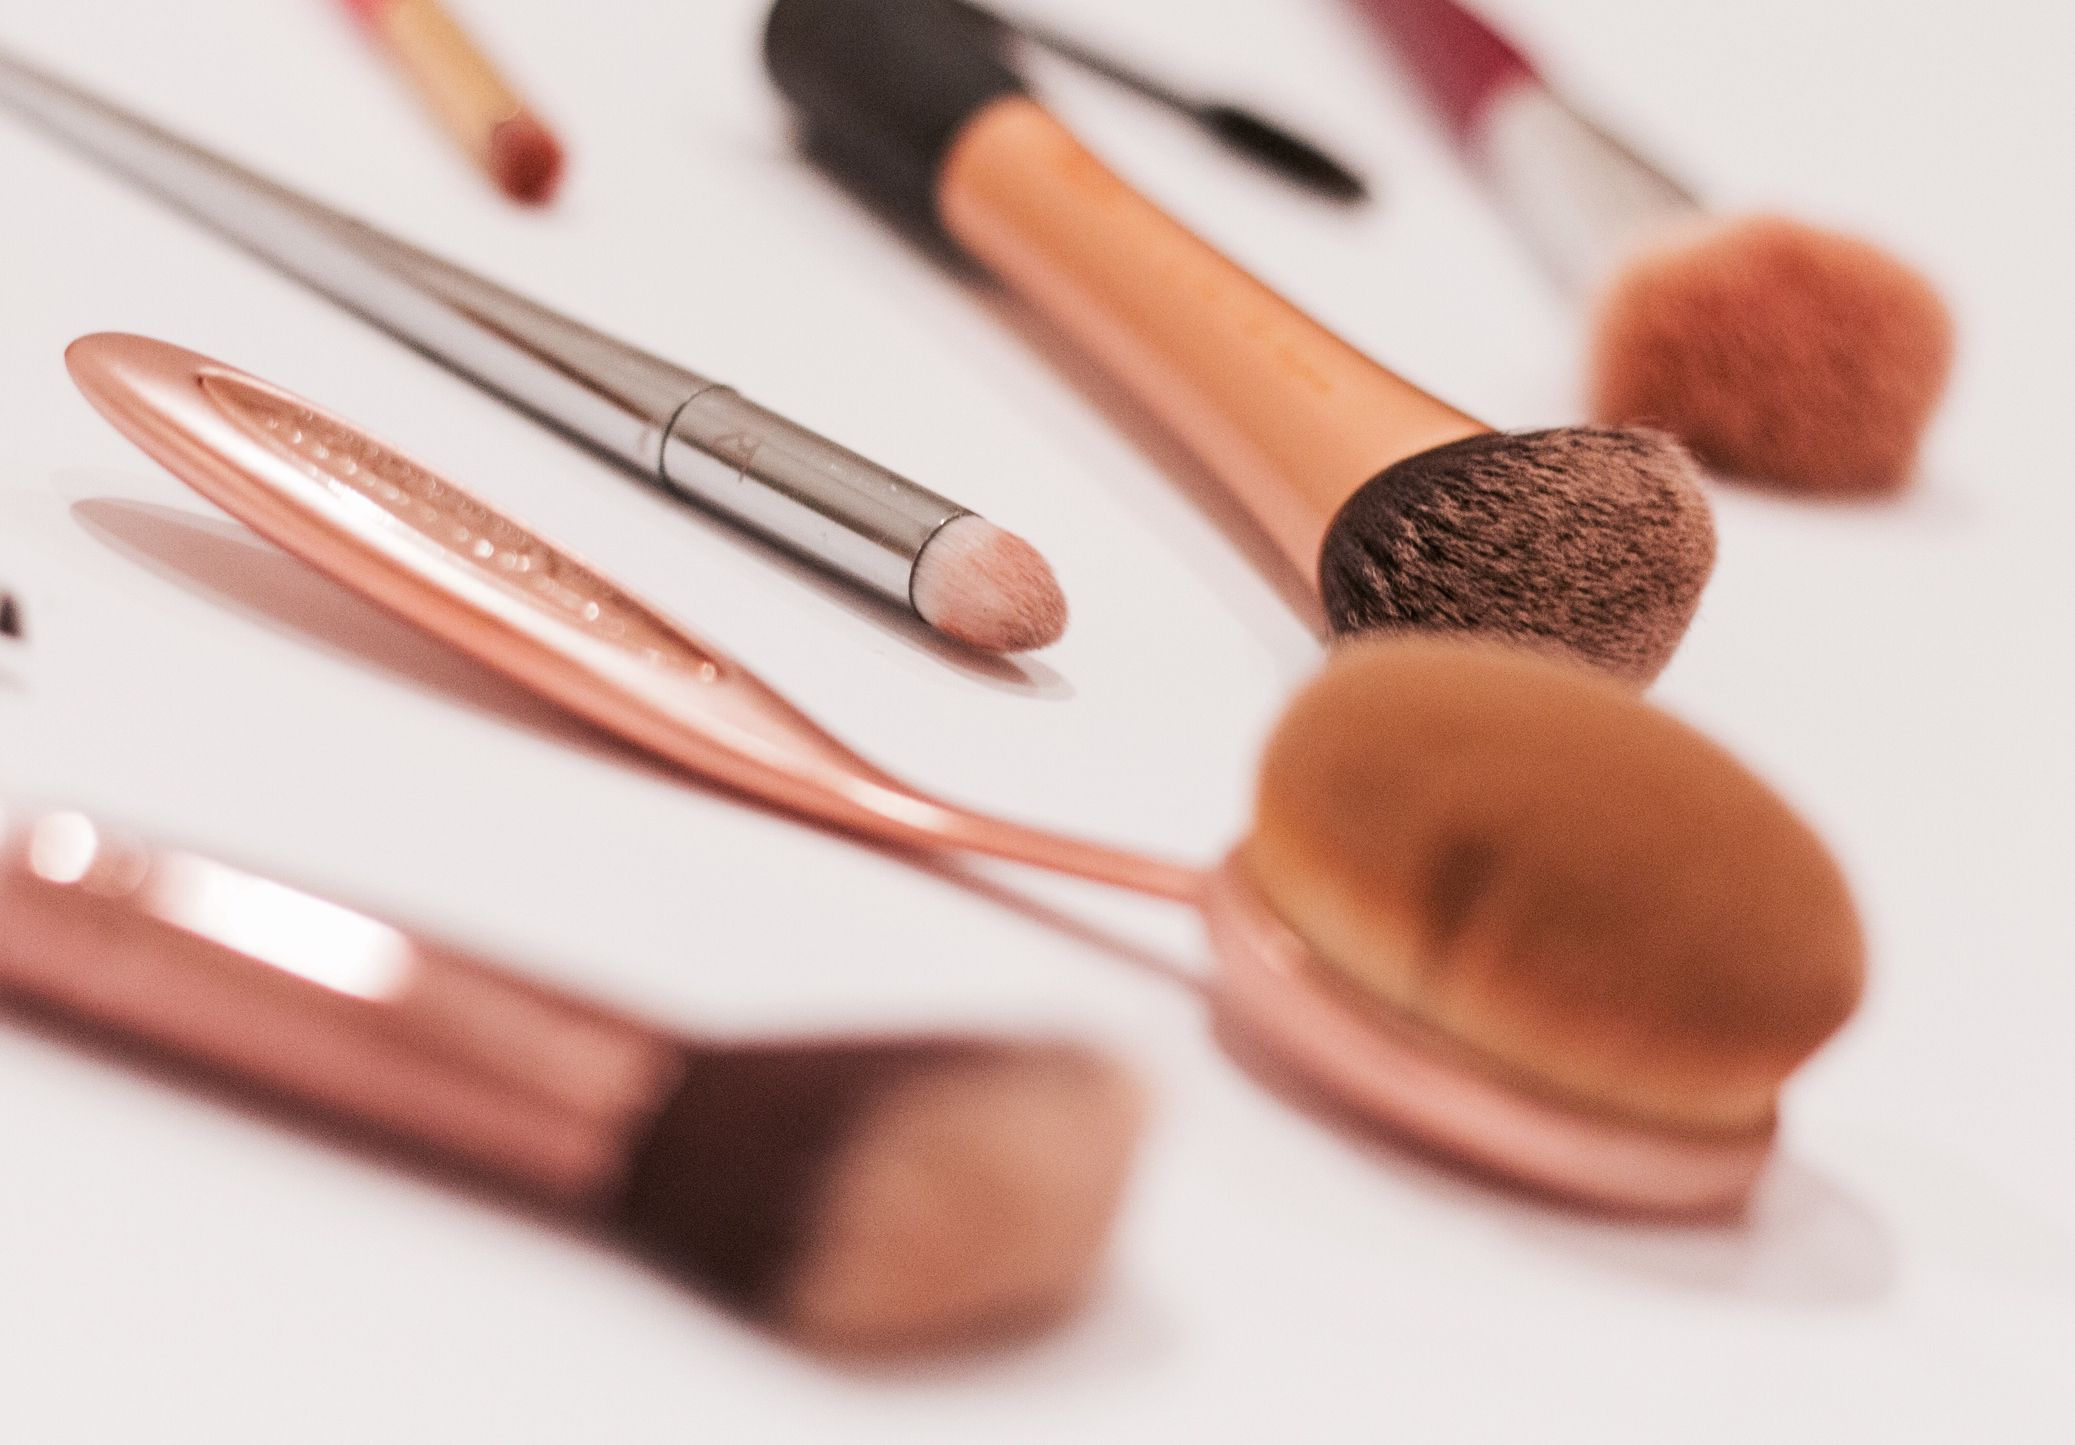 10 Foundation Brushes That Will Make Your Skin Look